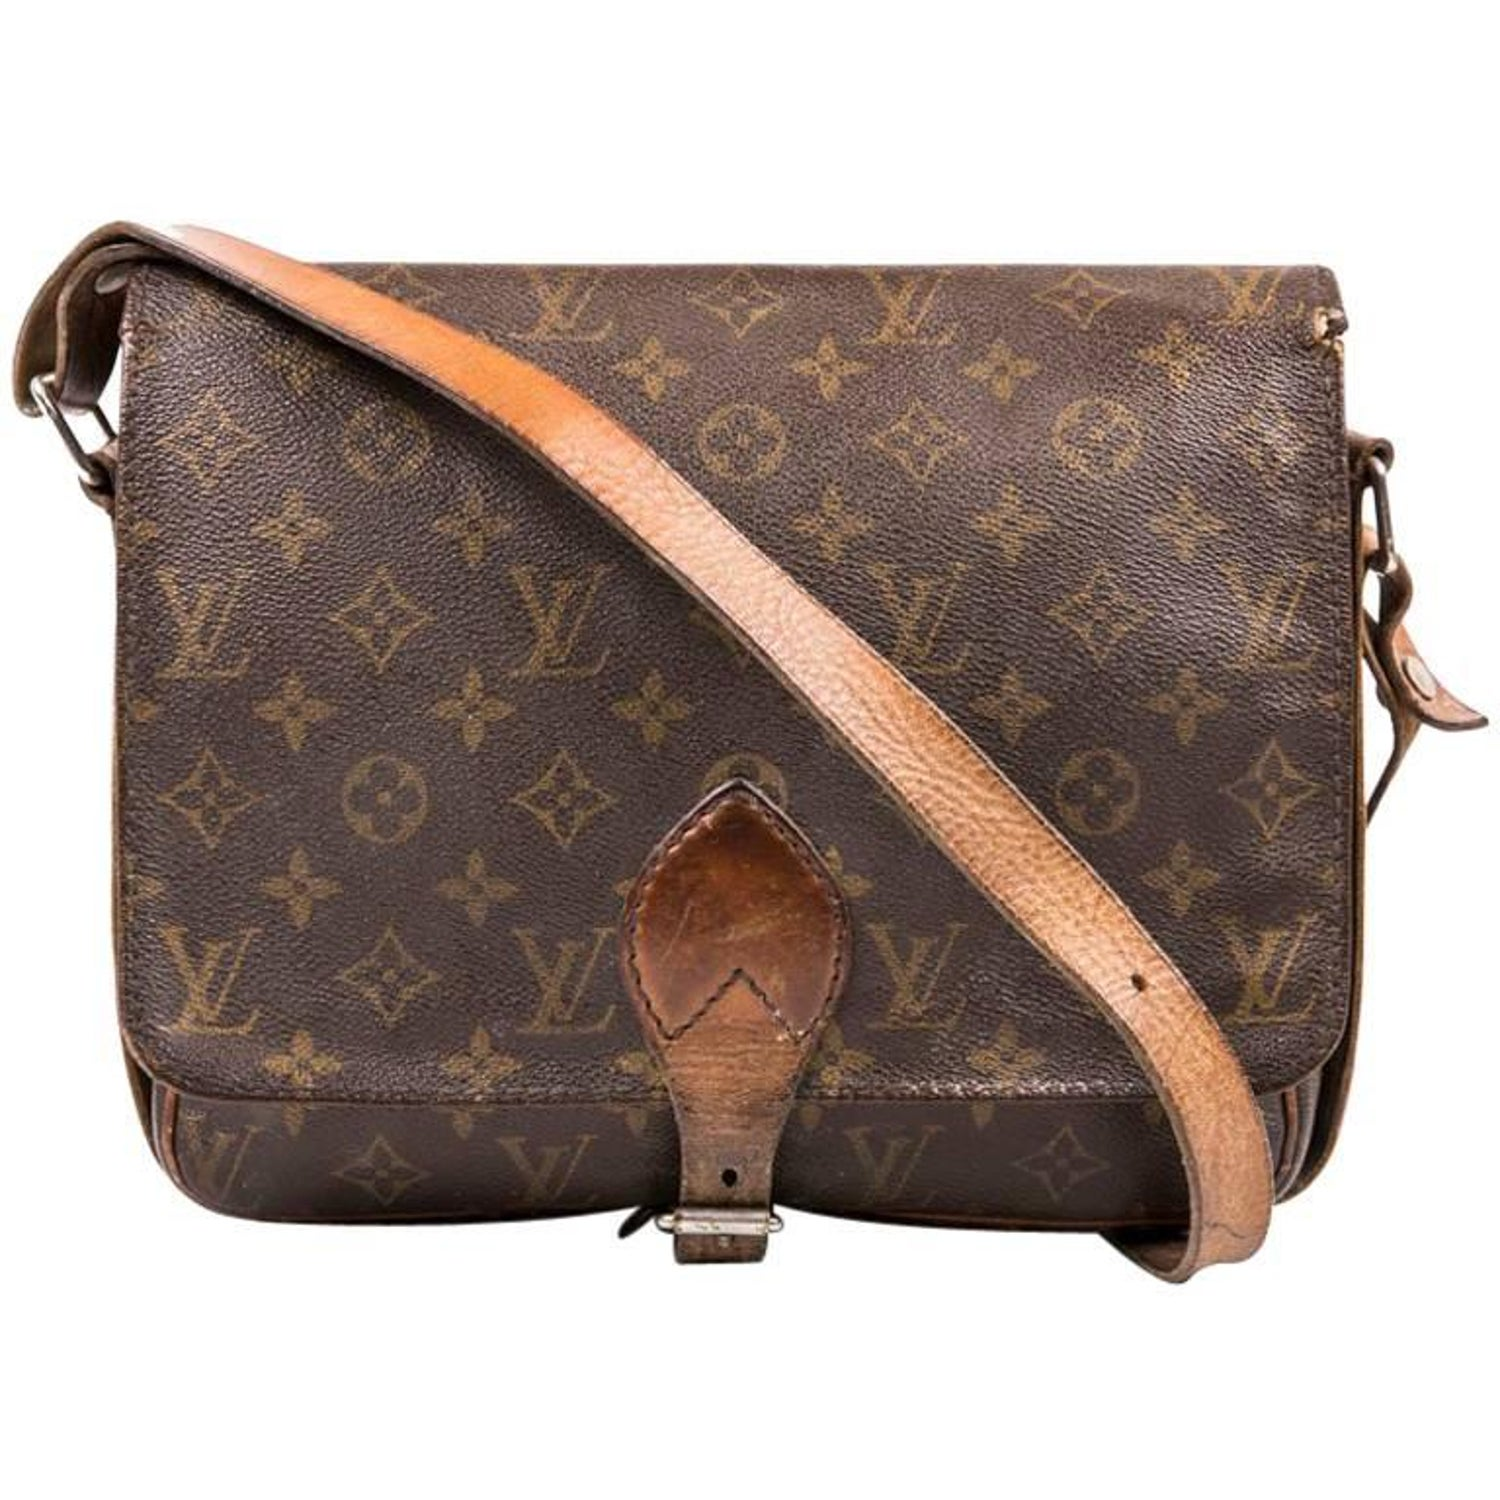 07907f7209d1 LOUIS VUITTON Cartouchière Bag in Brown Monogram Canvas and Natural Leather  at 1stdibs